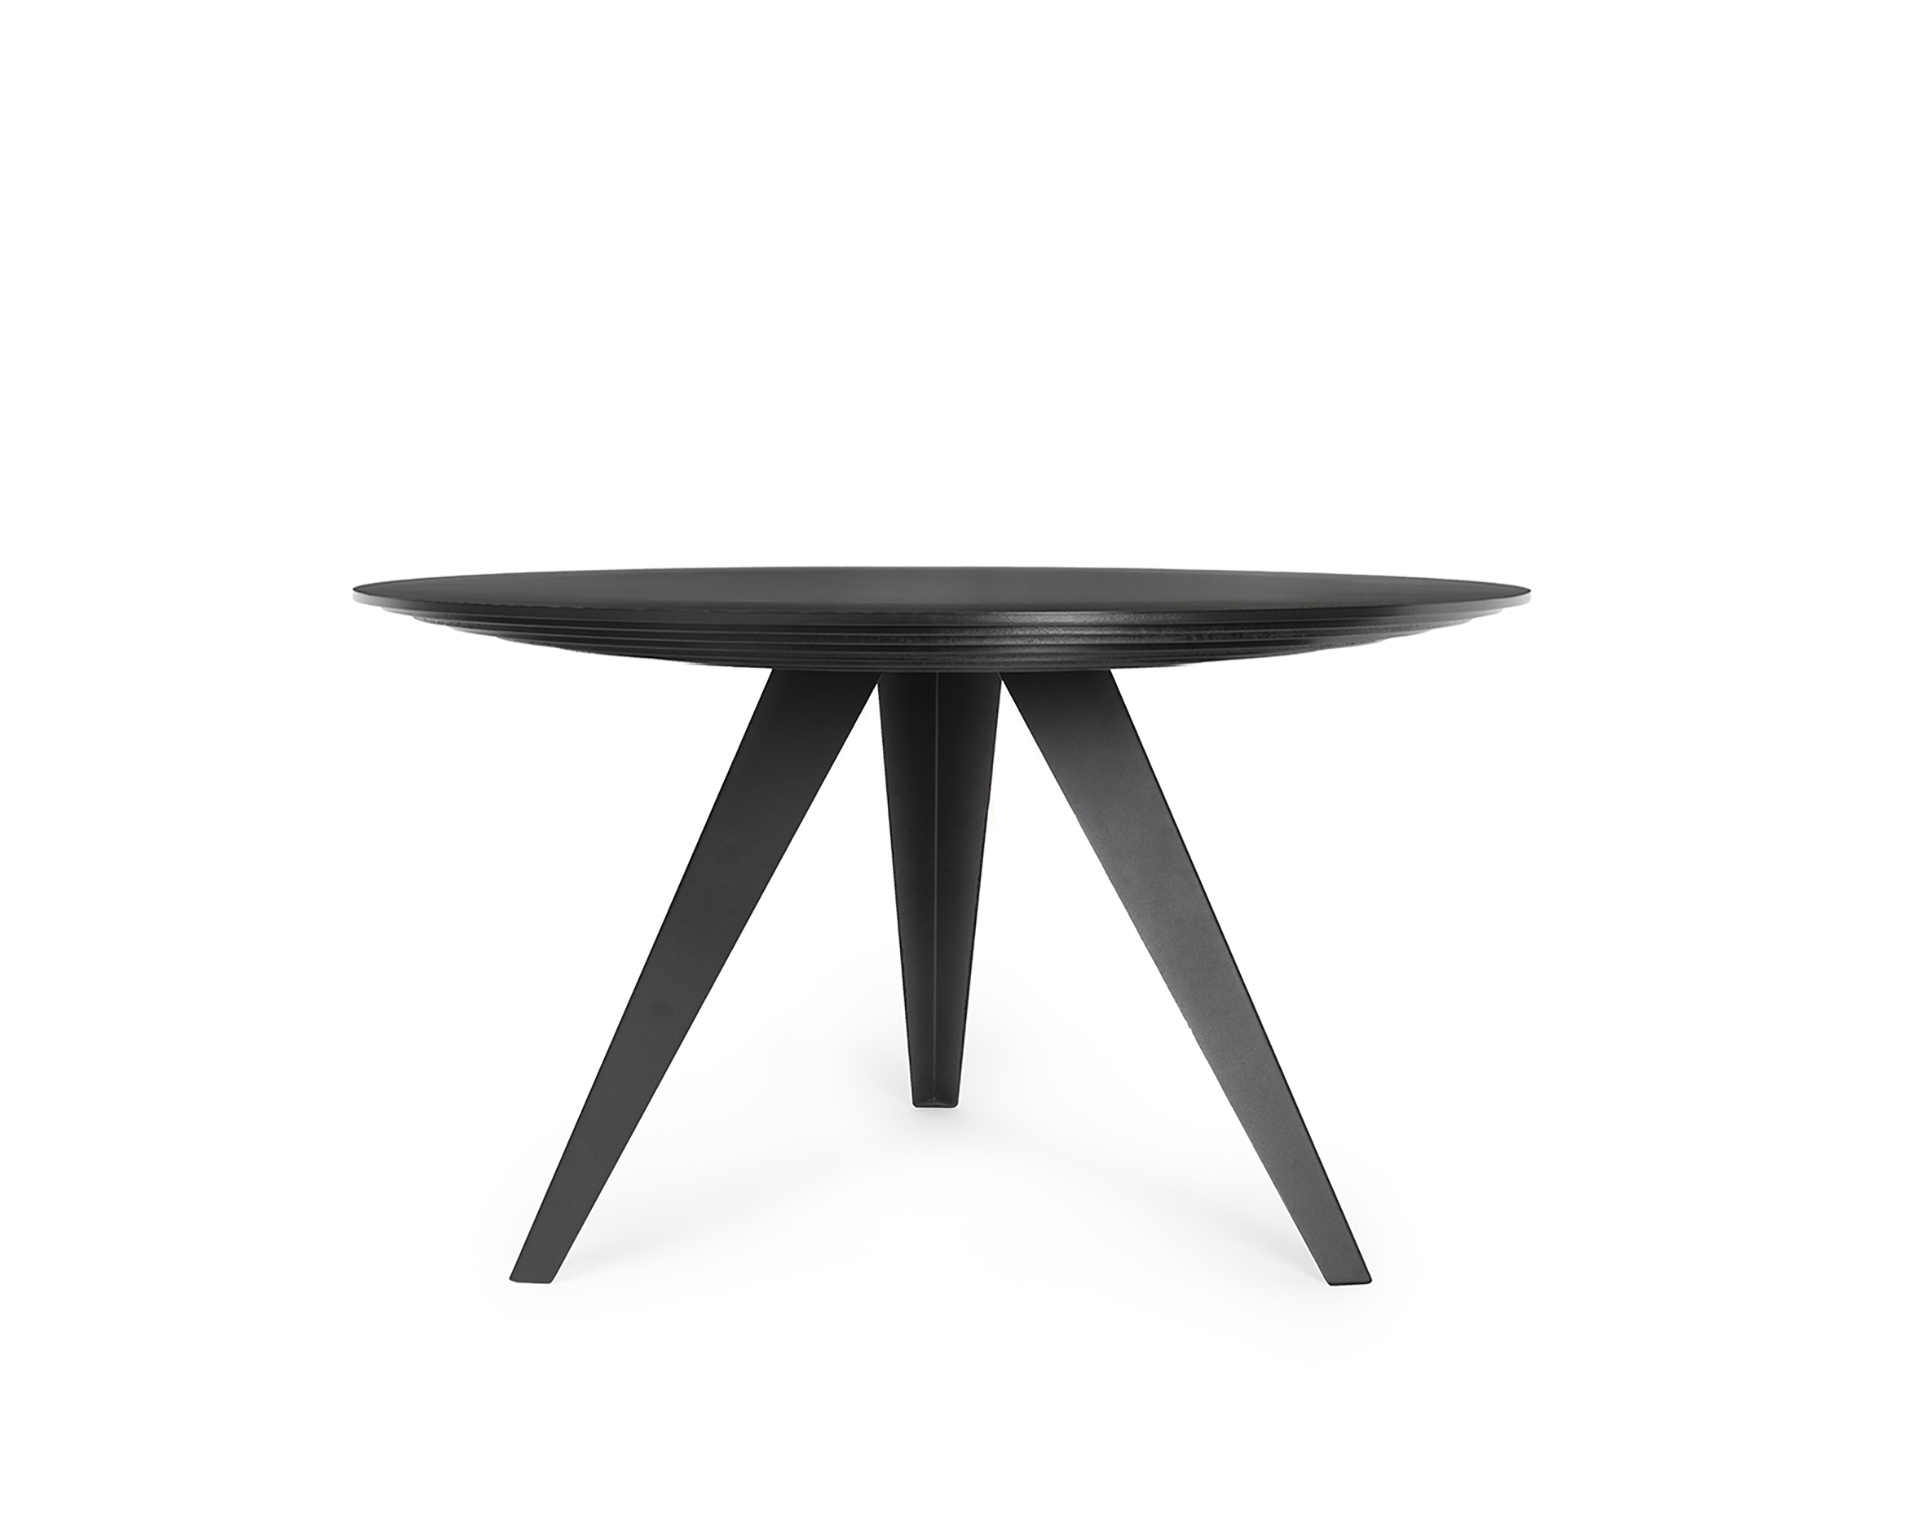 Grote Smalle Sidetable.Round Dining Table Belly L Kees Marcelis L Odesi Your Dutch Design